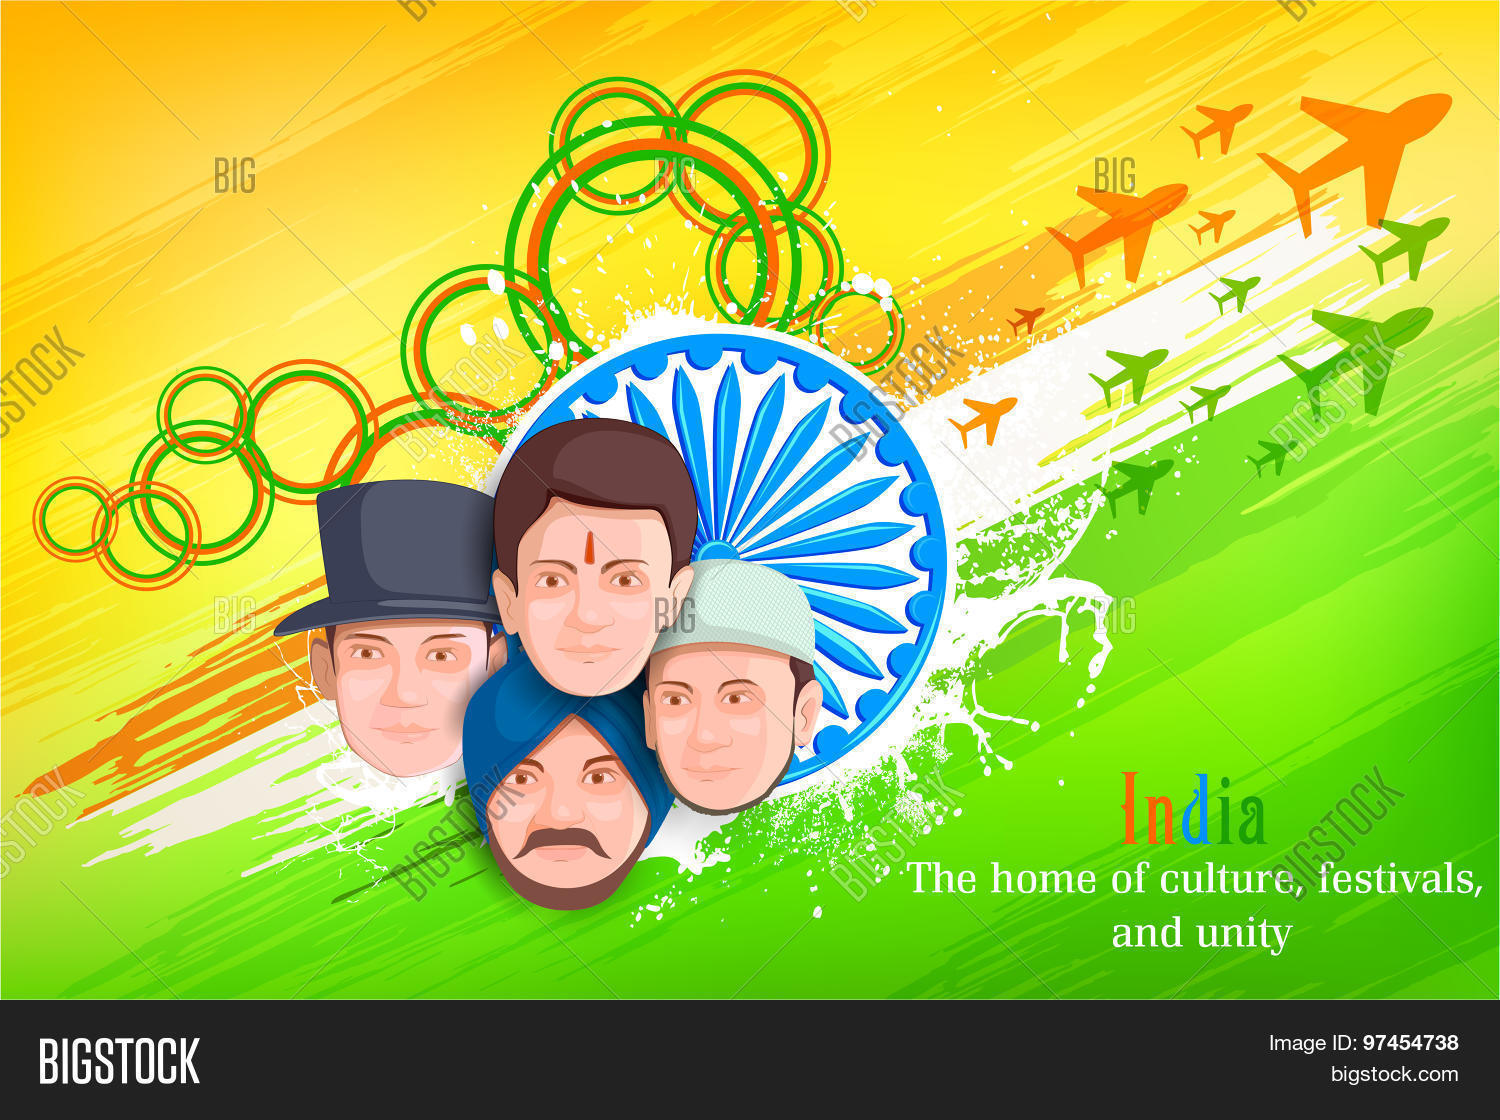 india unity in divercity India is a country which proves better the concept of unity in diversity india is a highly populated country and famous all over the world because of the characteristic of unity in diversity unity in diversity is the strength and power of india which has now been the most important feature identifying india.